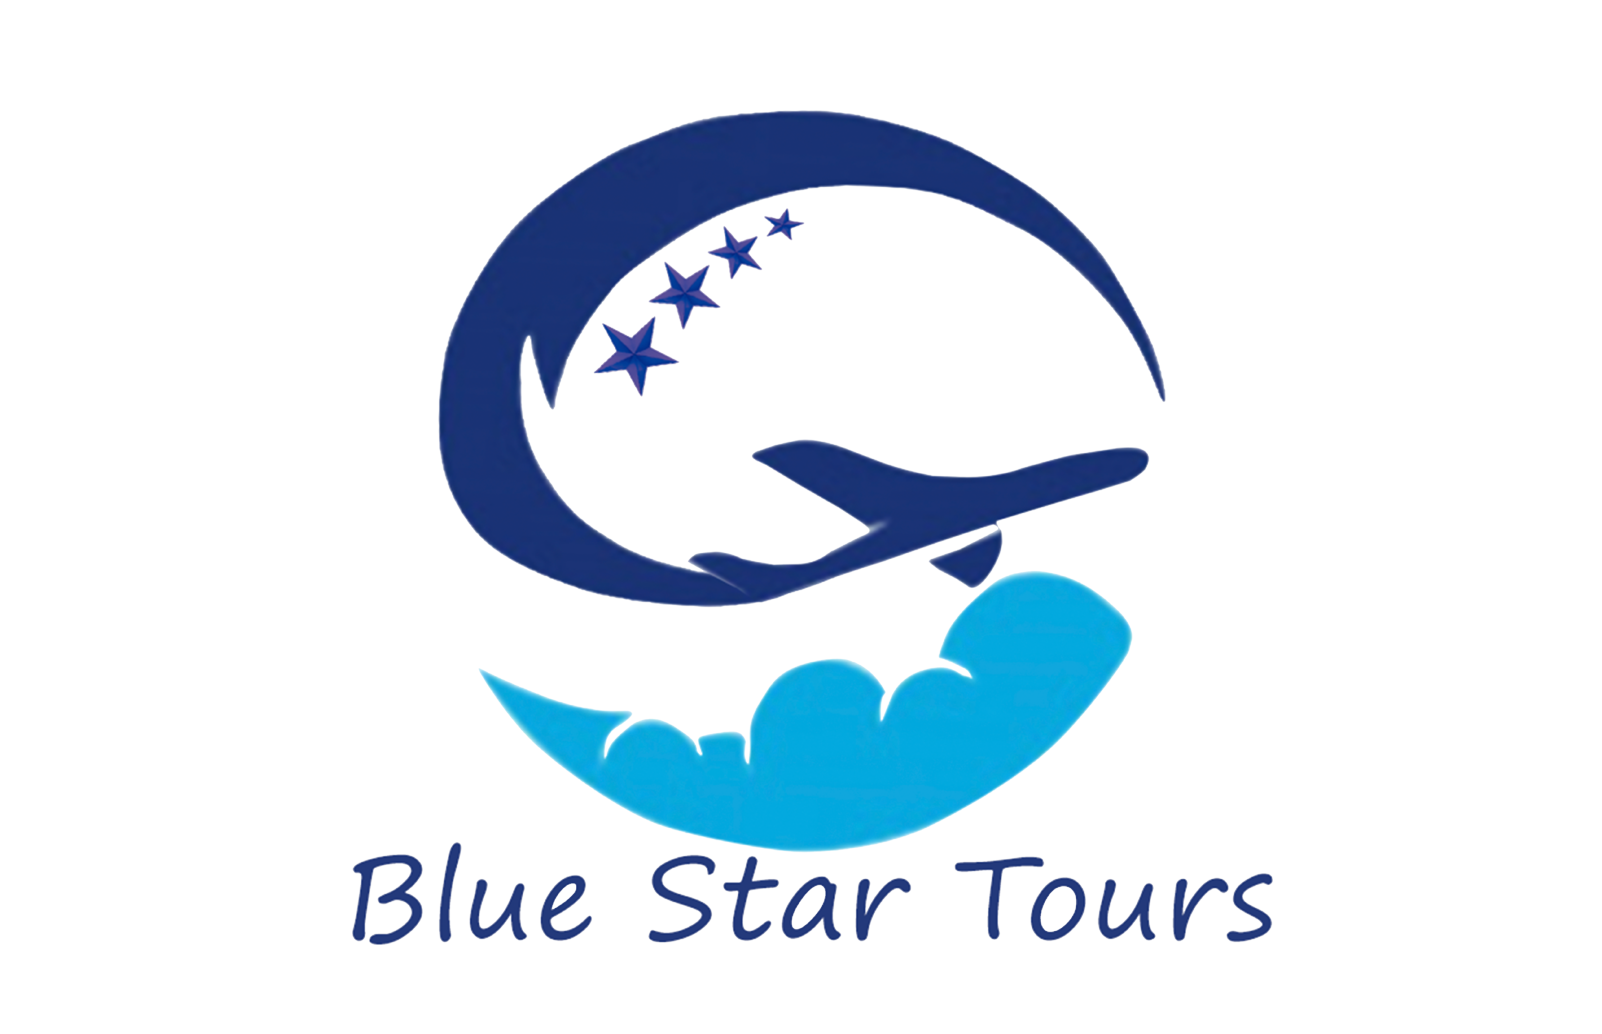 Blue Star Tours